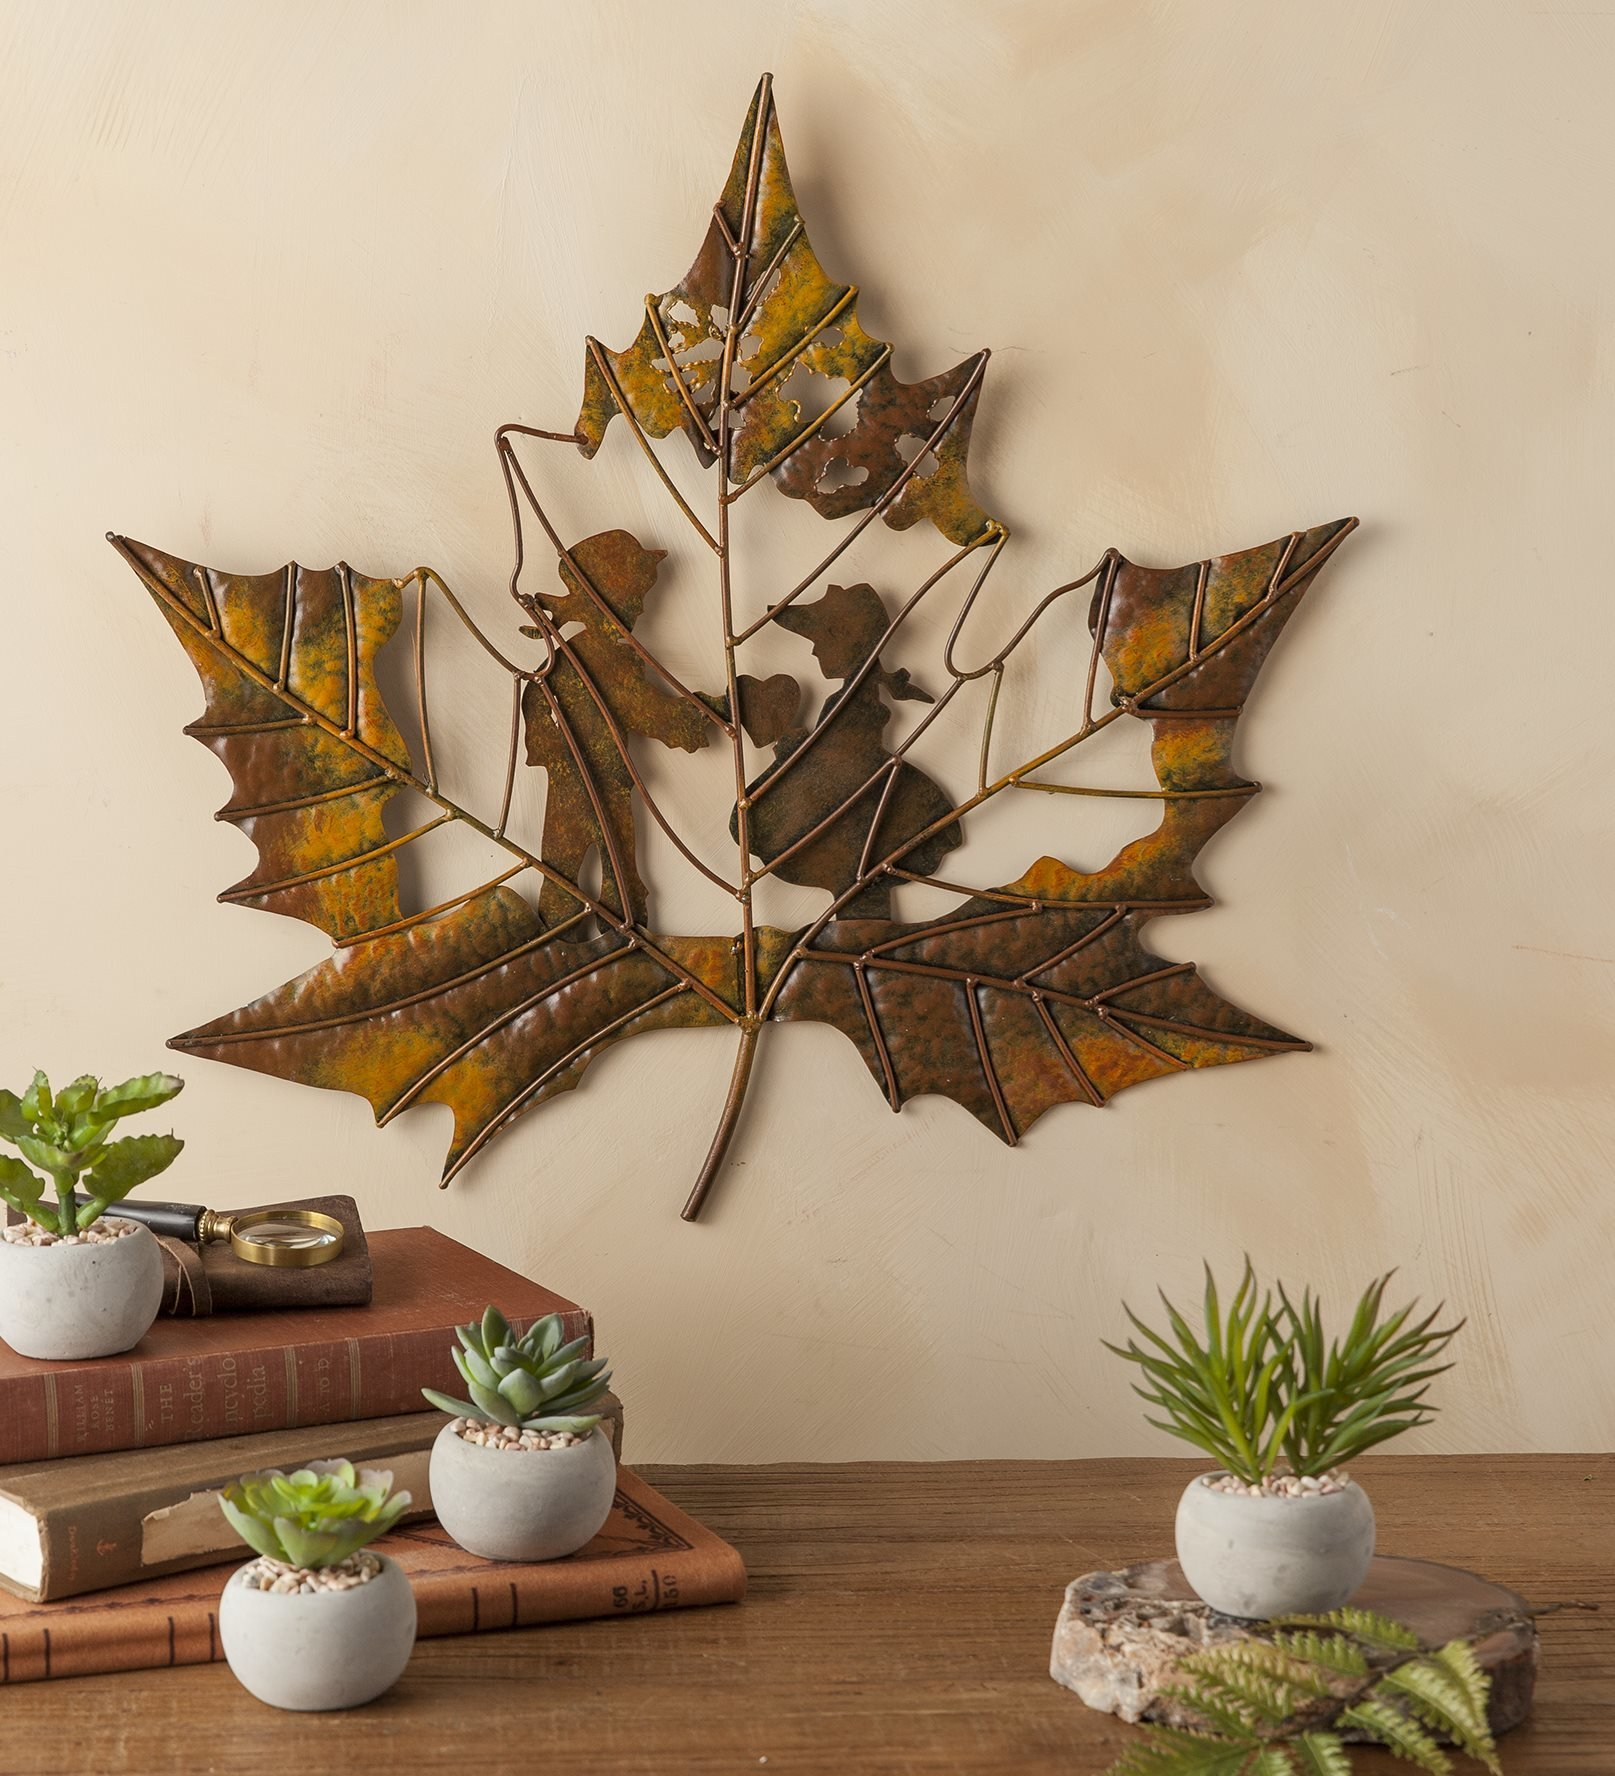 Wayfair Intended For Metal Leaf Wall Decor By Red Barrel Studio (View 17 of 20)